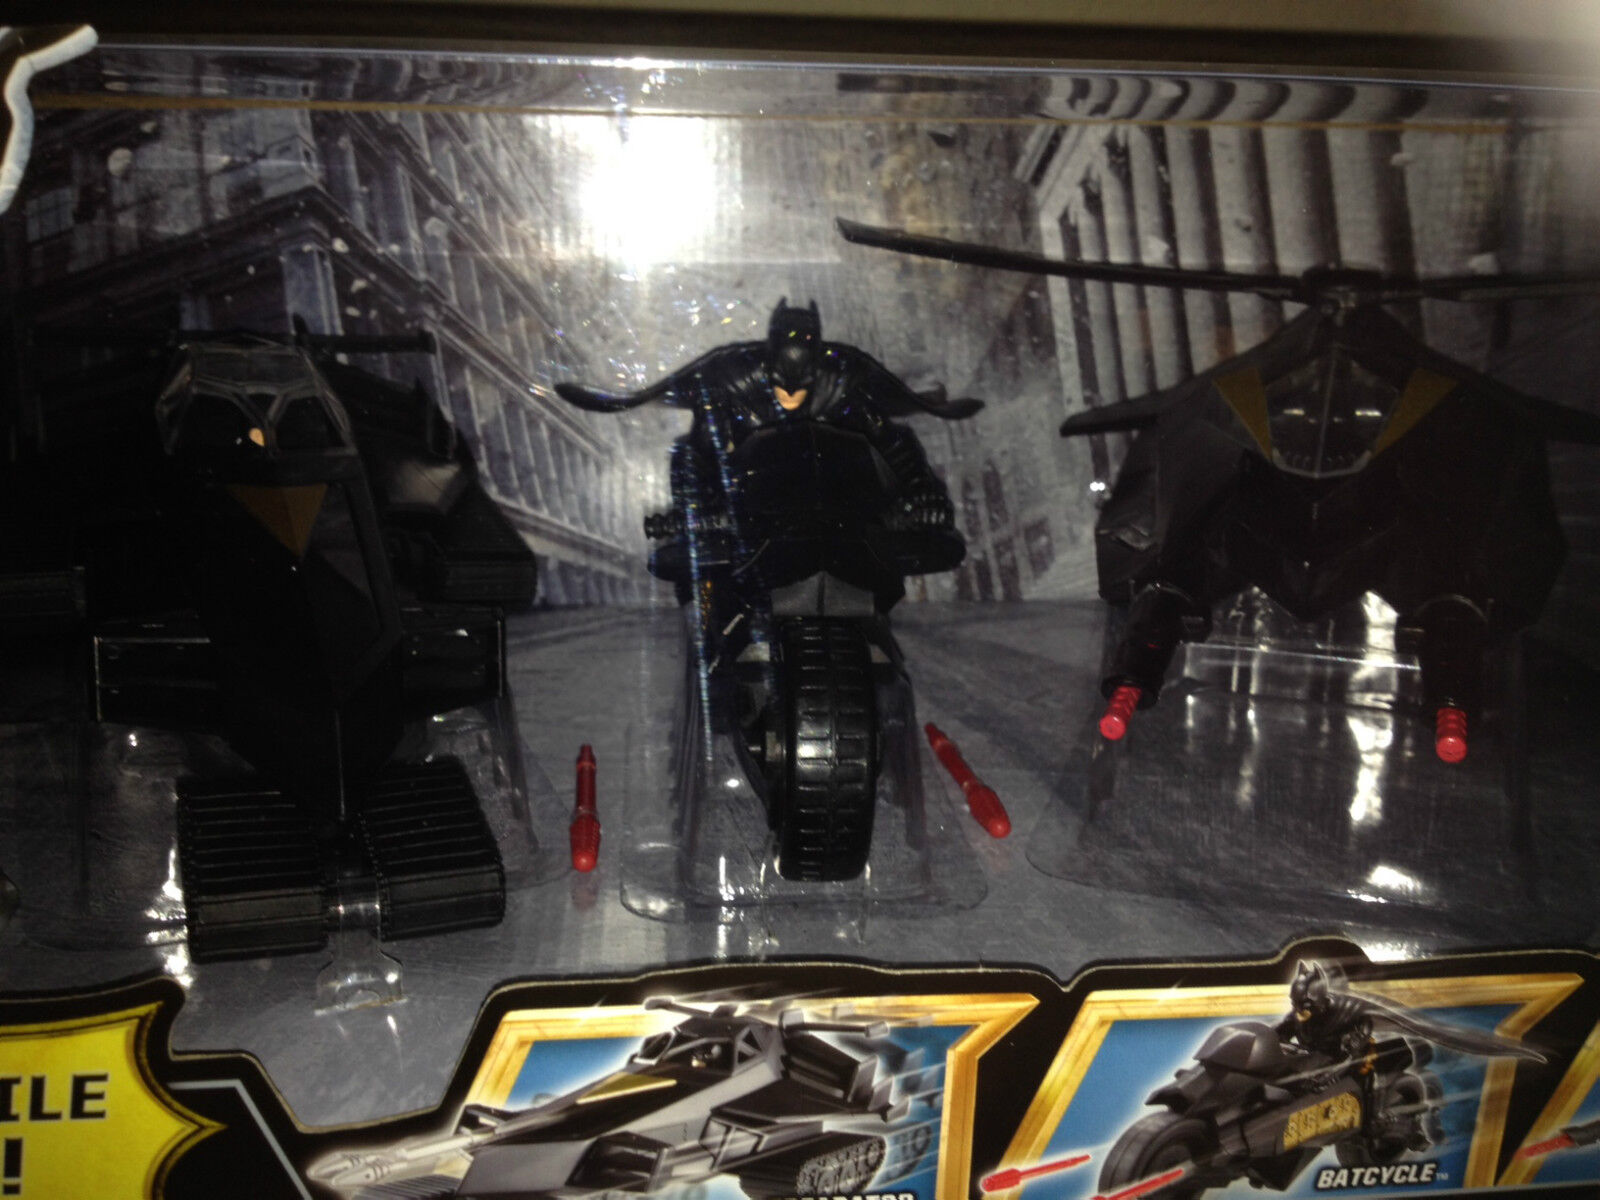 Batman the the the dark knight rises Squadron  Treadator batcycle and attack copter set 2a4a3d